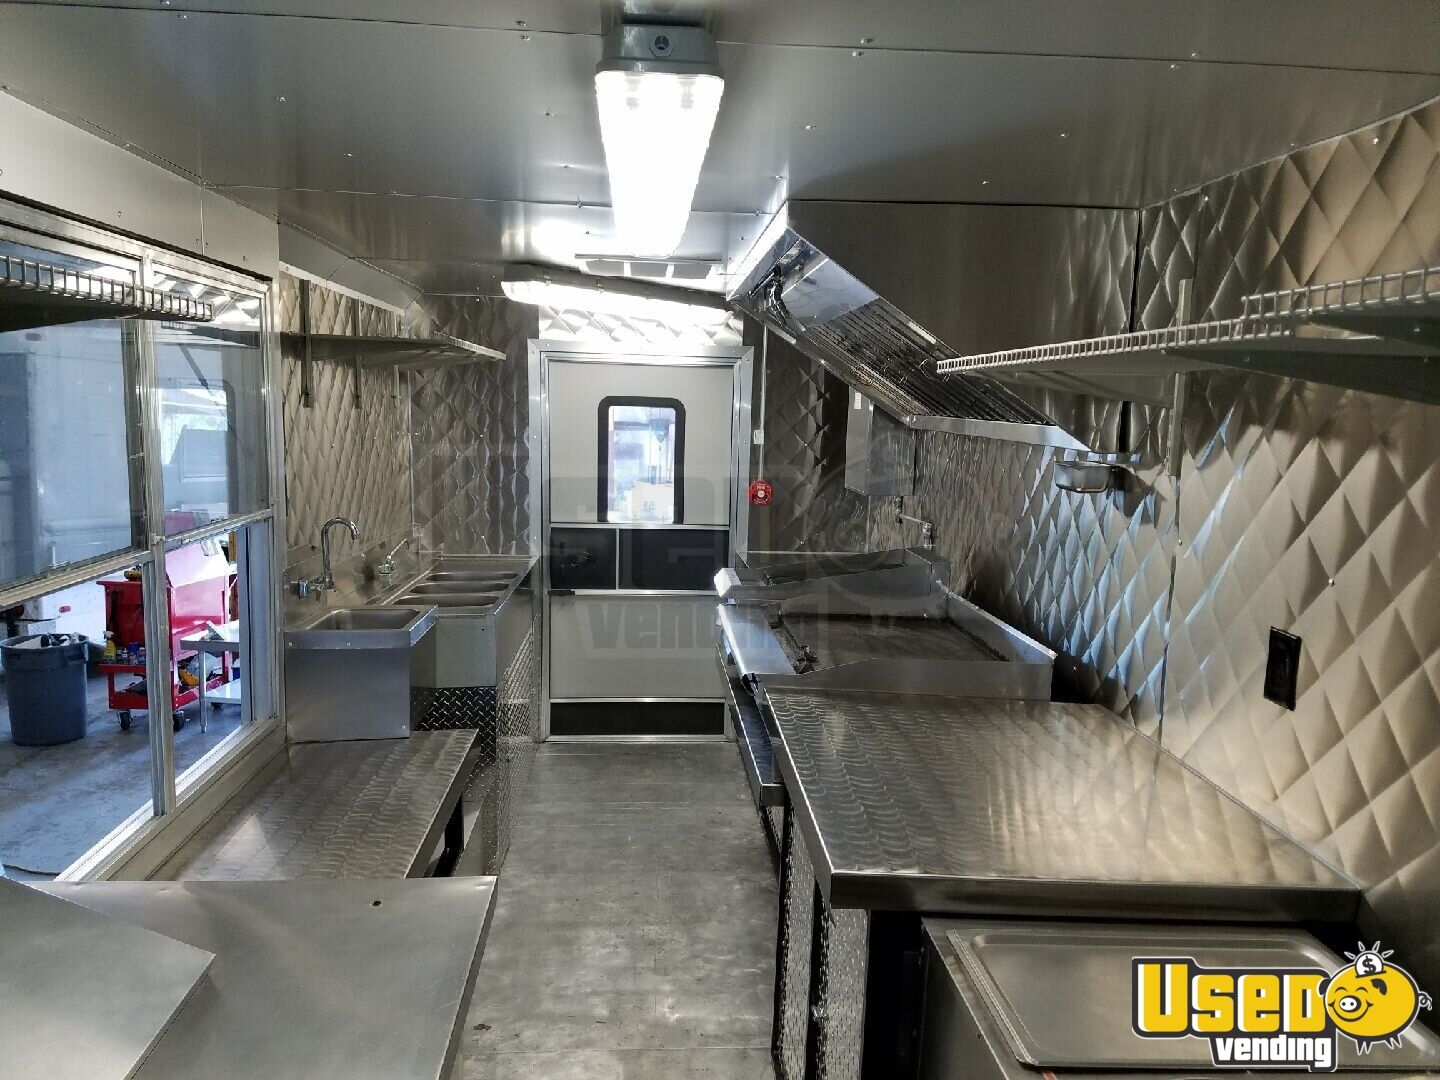 1983 Gruman-olson Step-van All-purpose Food Truck Insulated Walls Florida Gas Engine for Sale - 6